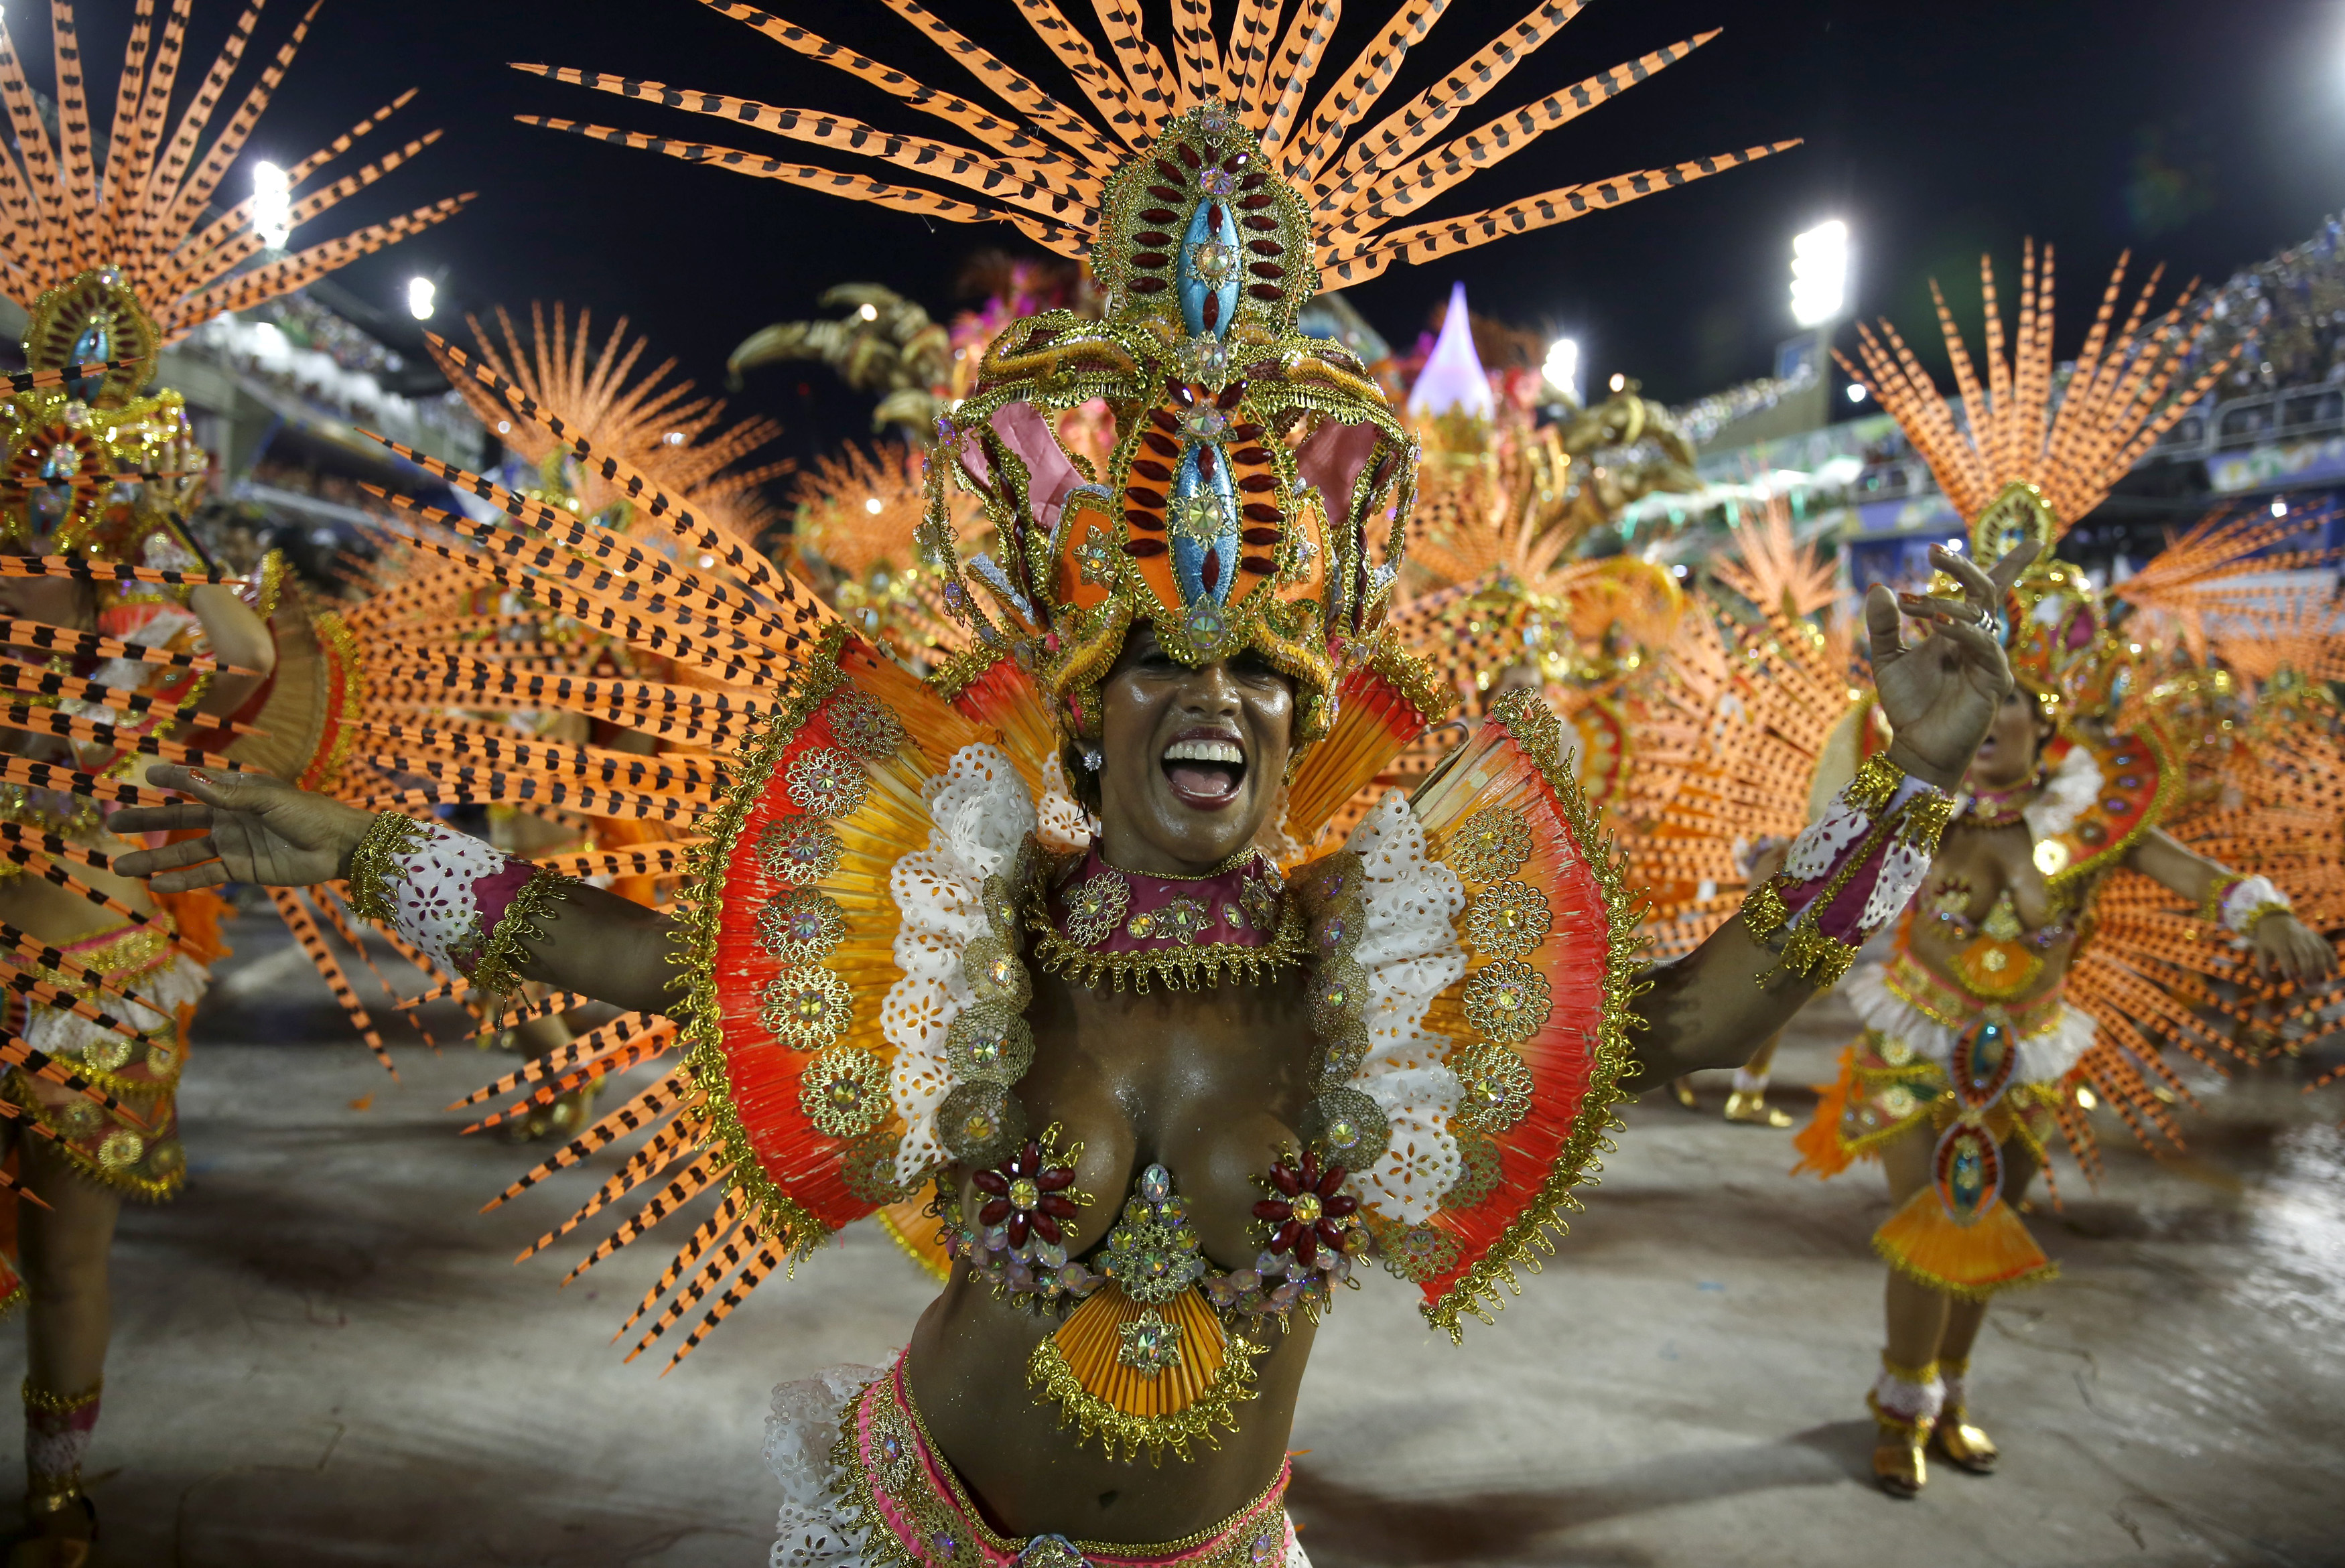 Step into the Sambadrome! Party during Carnival in Rio de